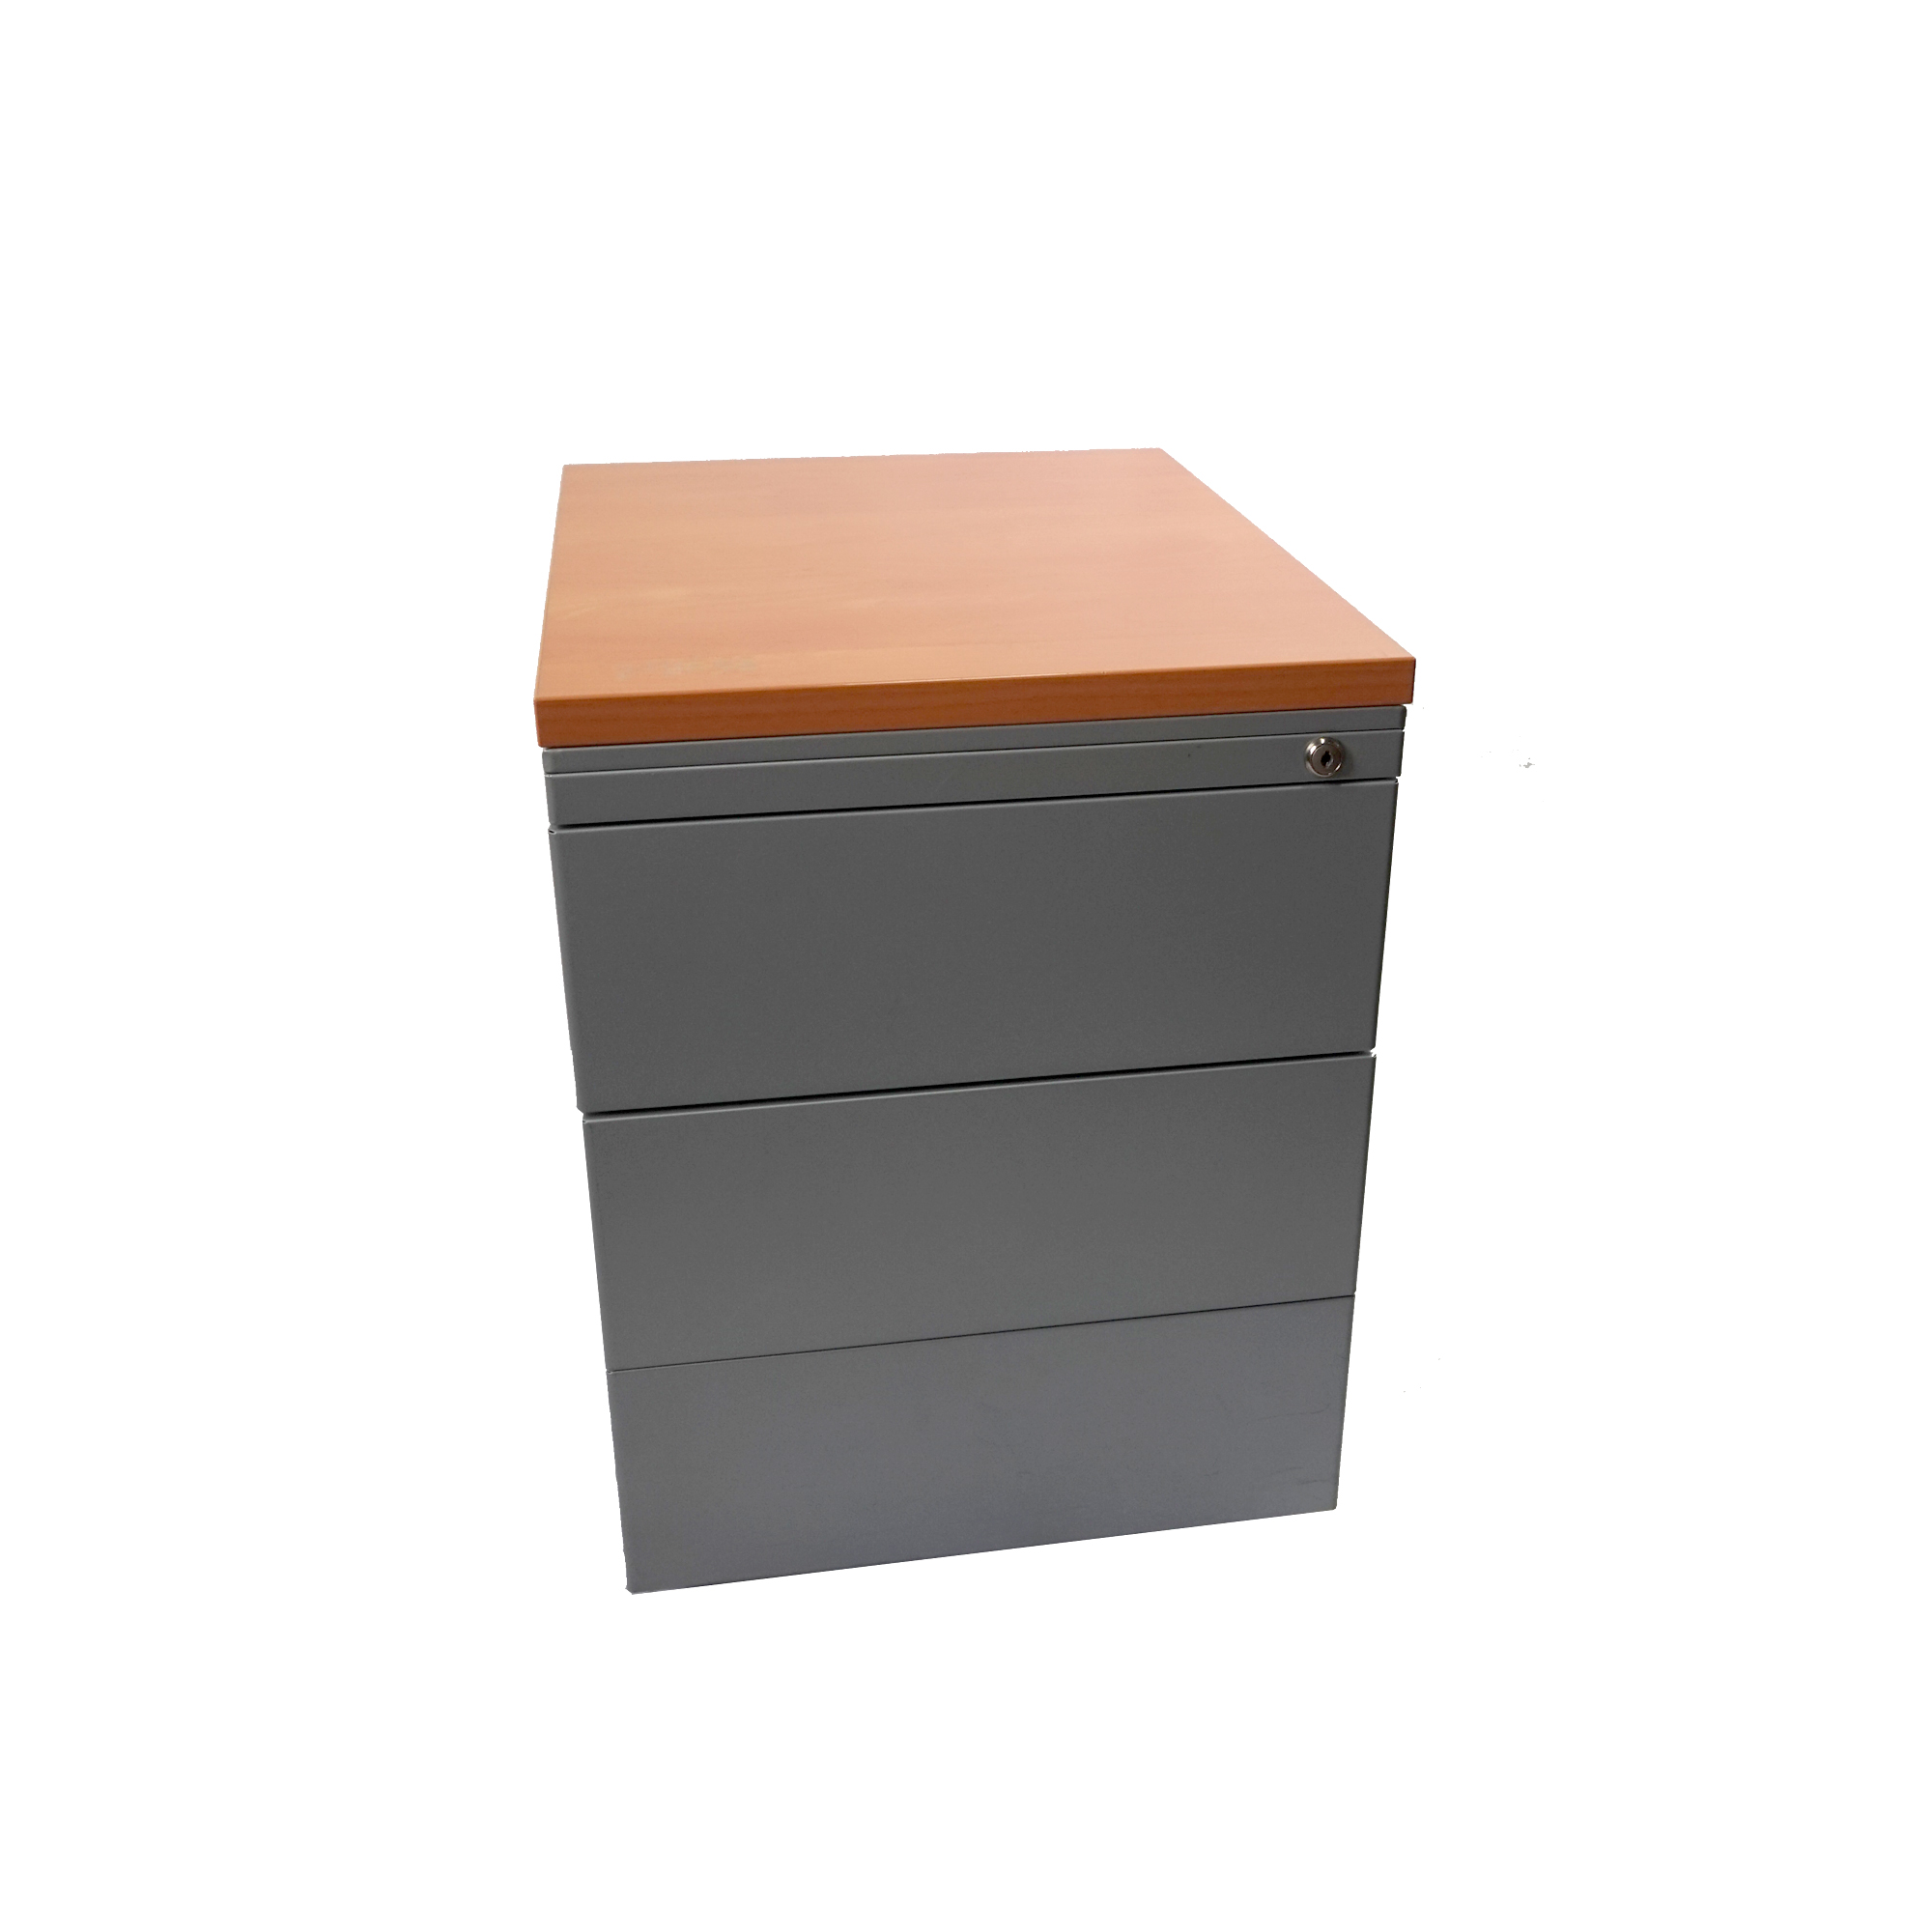 caisson bureau gris et bois occasion tricycle office. Black Bedroom Furniture Sets. Home Design Ideas